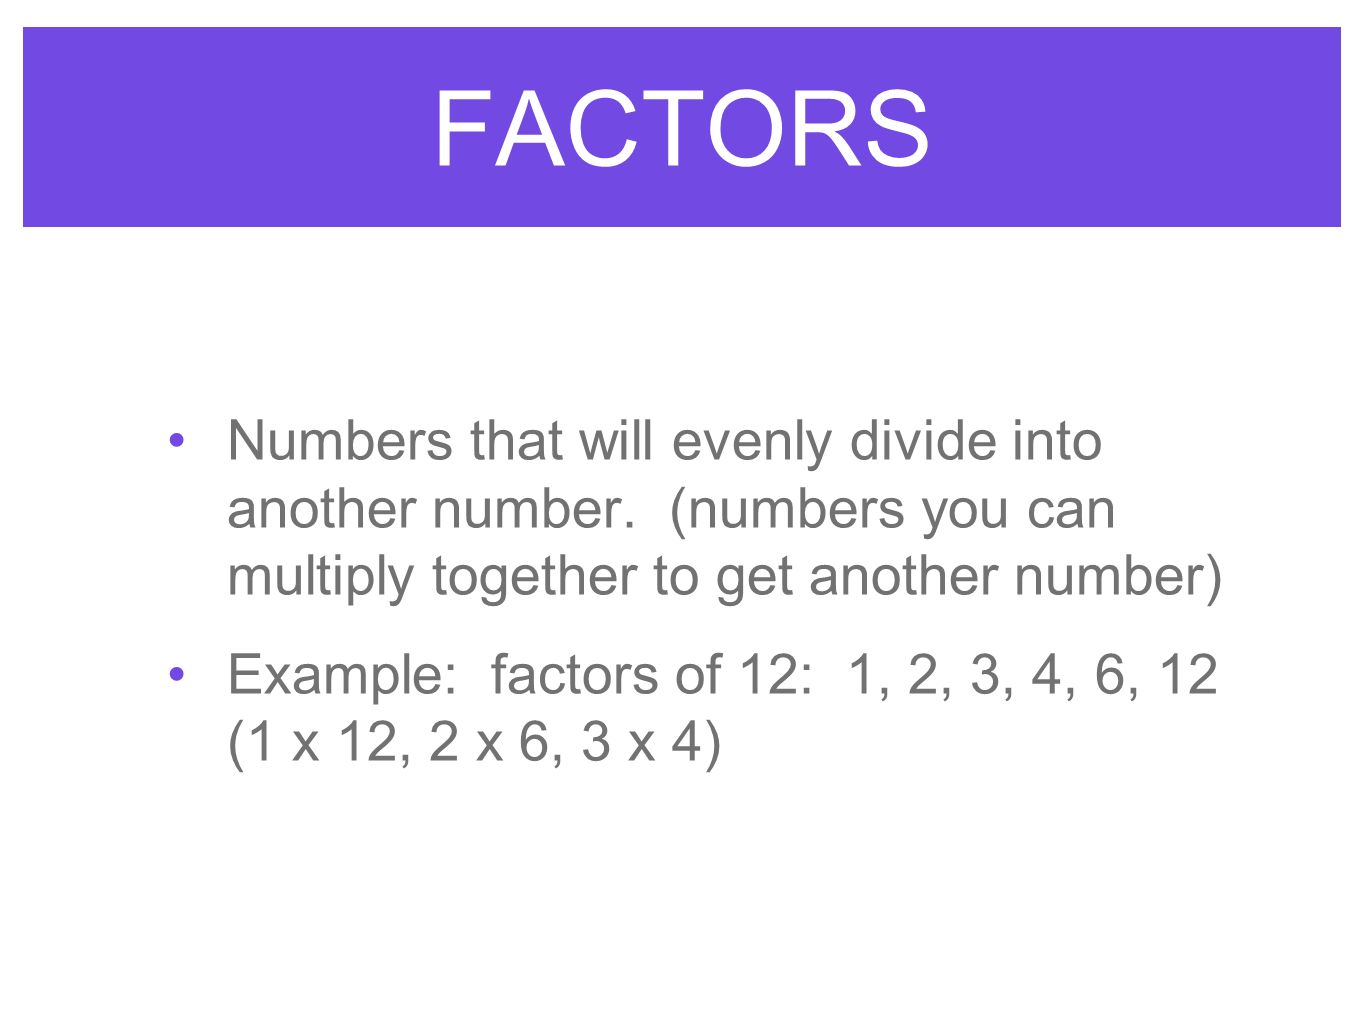 FACTORS Numbers that will evenly divide into another number. (numbers you can multiply together to get another number) Example: factors of 12: 1, 2, 3